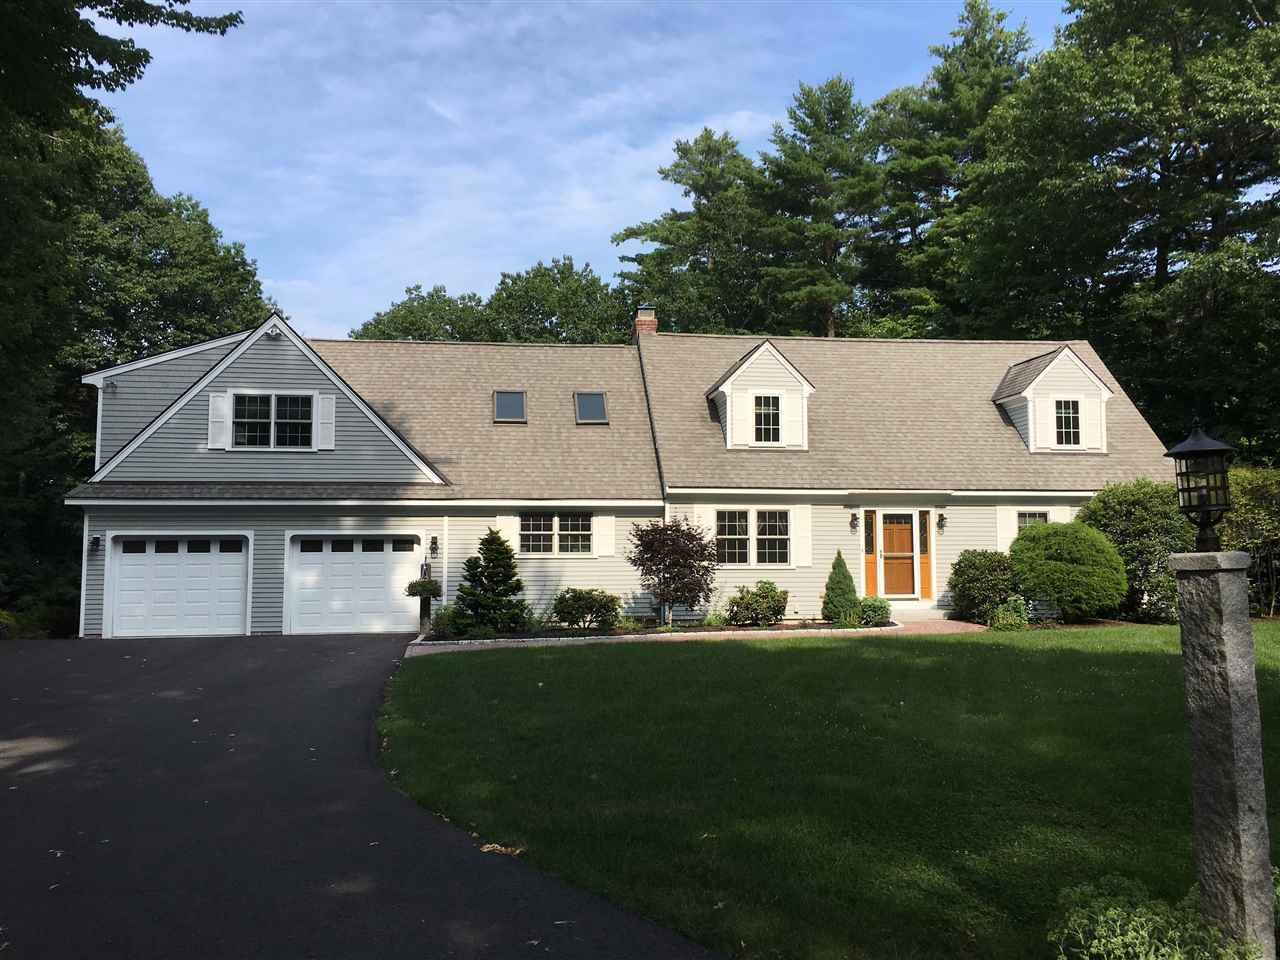 Photo of 14 Point Sewall Road Wolfeboro NH 03894